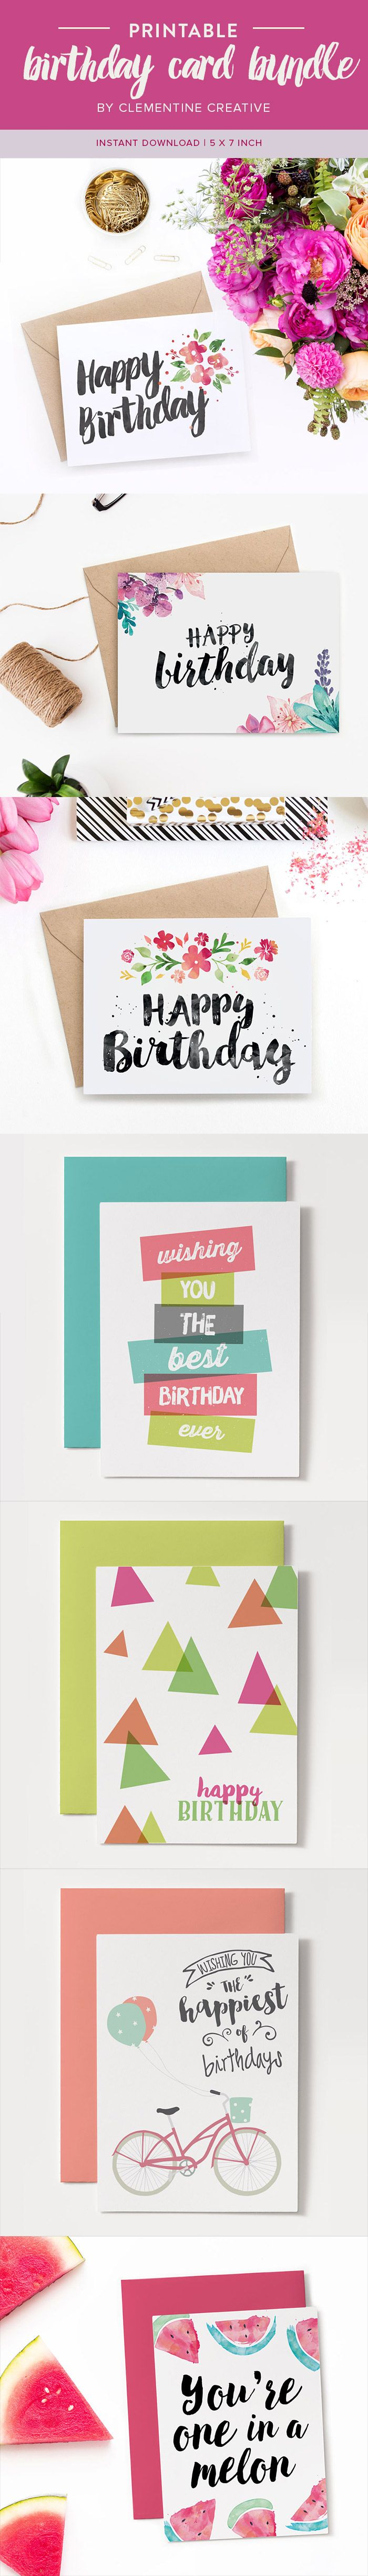 111 Best Greeting Cards Images On Pinterest Beach Cards Cards And